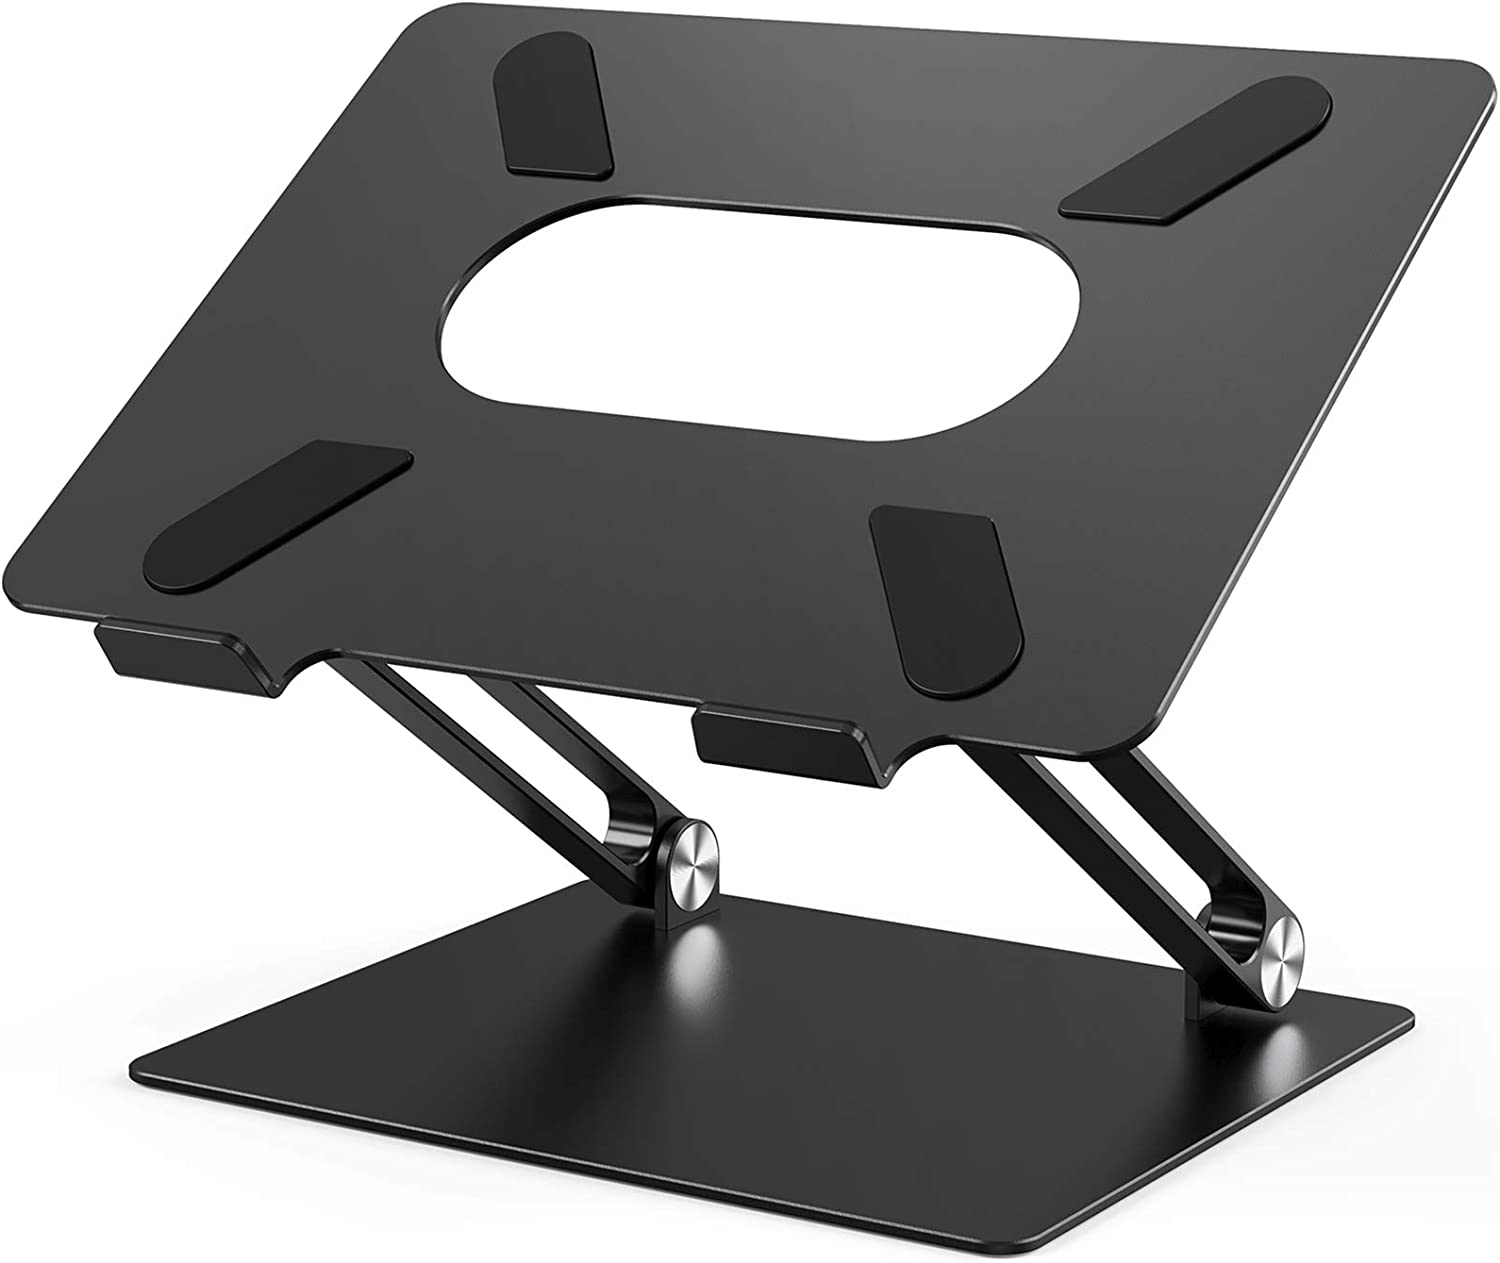 Laptop Stand, Ergonomic Adjustable Notebook Stand, Aluminum Portable Computer Riser with Heat-Vent Foldable Desktop Laptop Holder Compatible with MacBook Air Pro, All 10 to 17 Inch Laptops(Black)